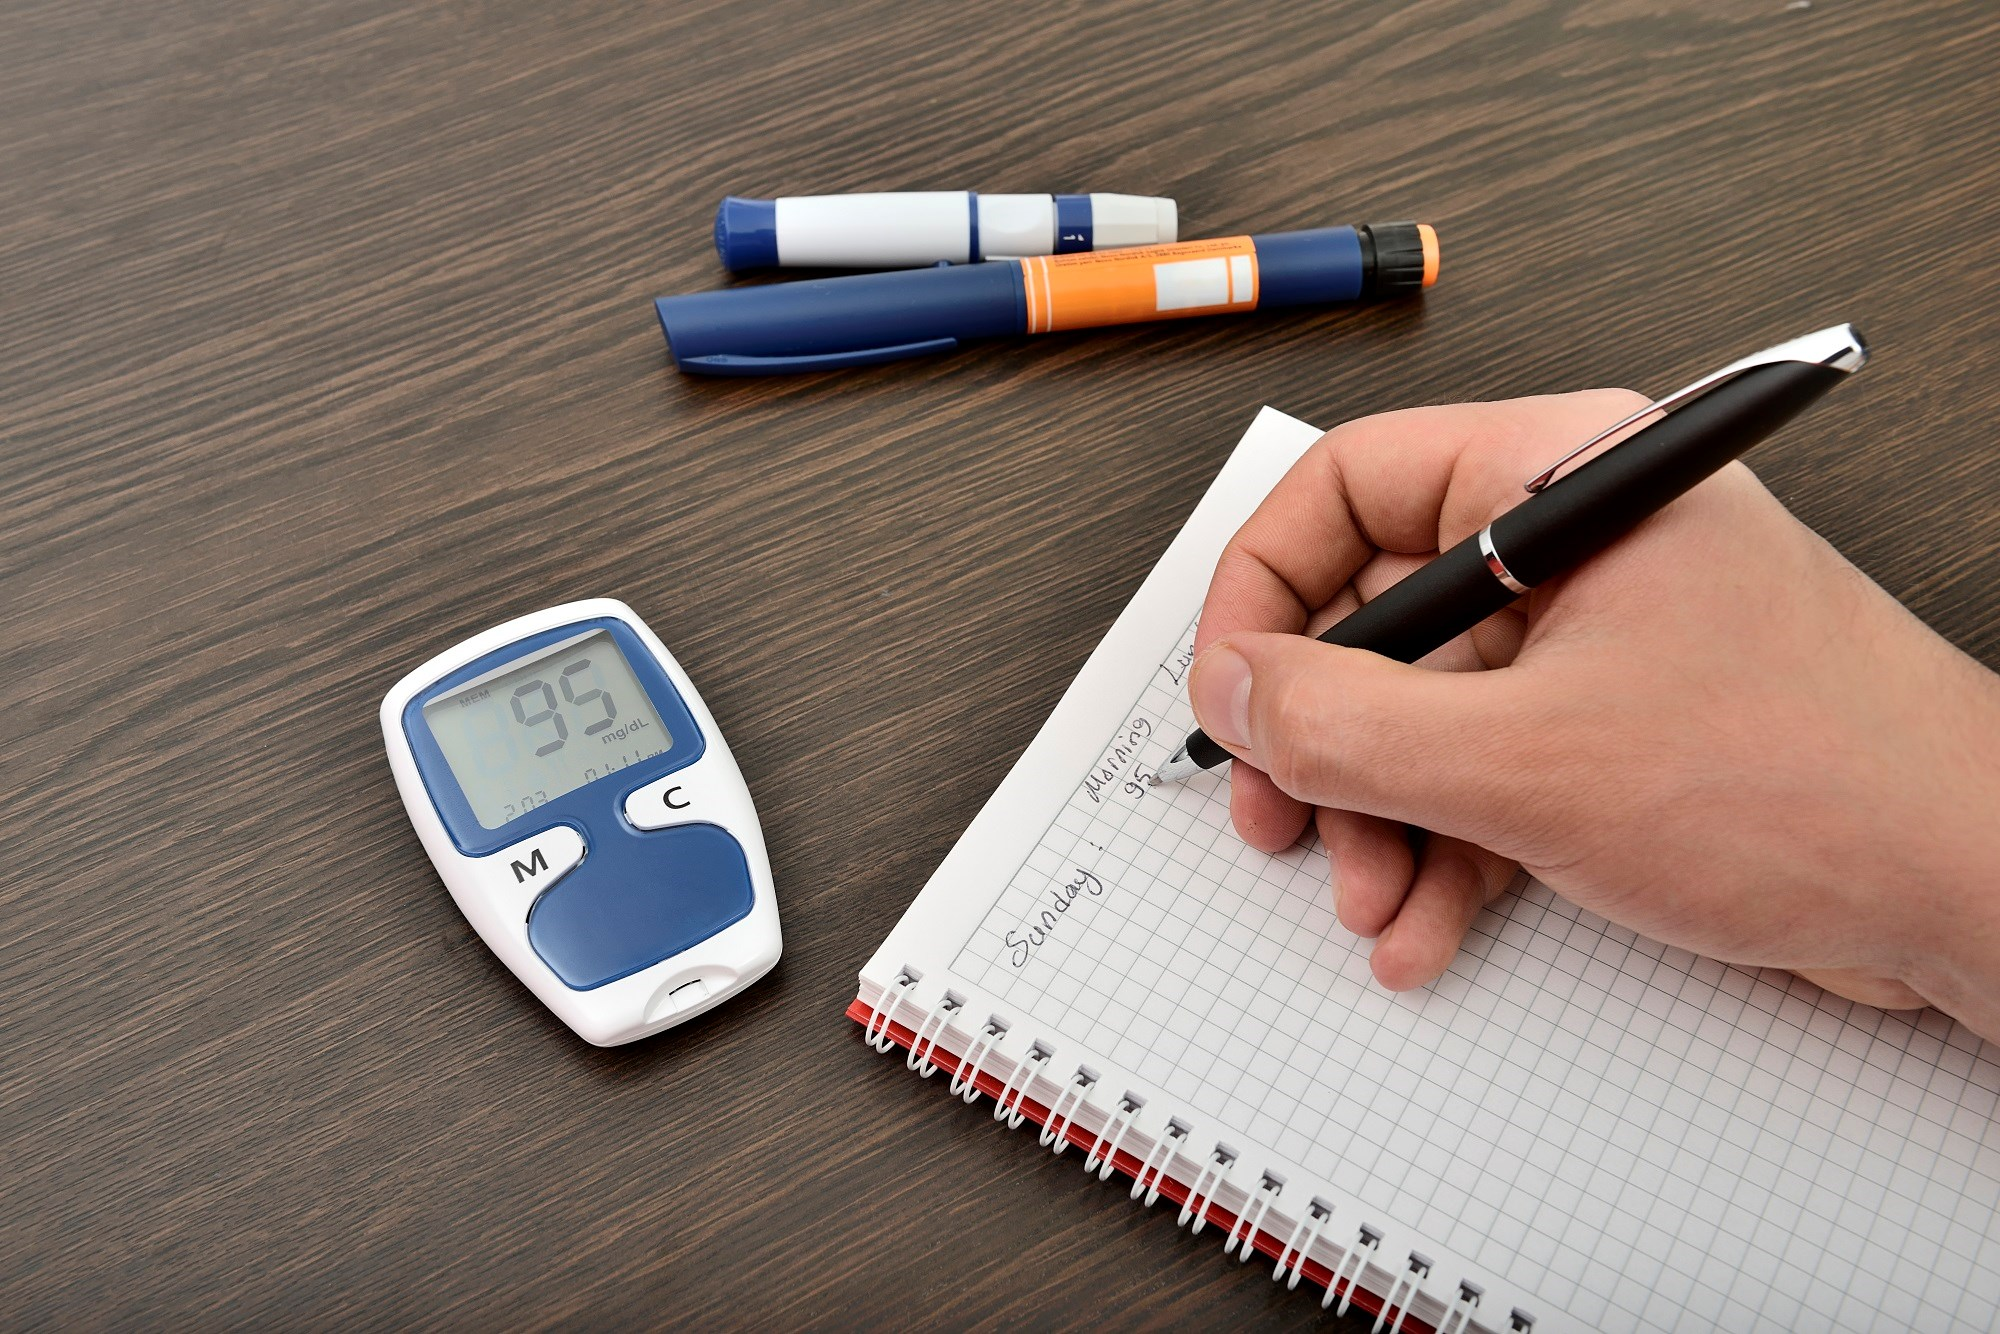 Researchers note that it is worrisome that both CGM systems tend to overestimate glycemia in cases of hypoglycemia, as patients may make incorrect treatment decisions based on inaccurate readings.